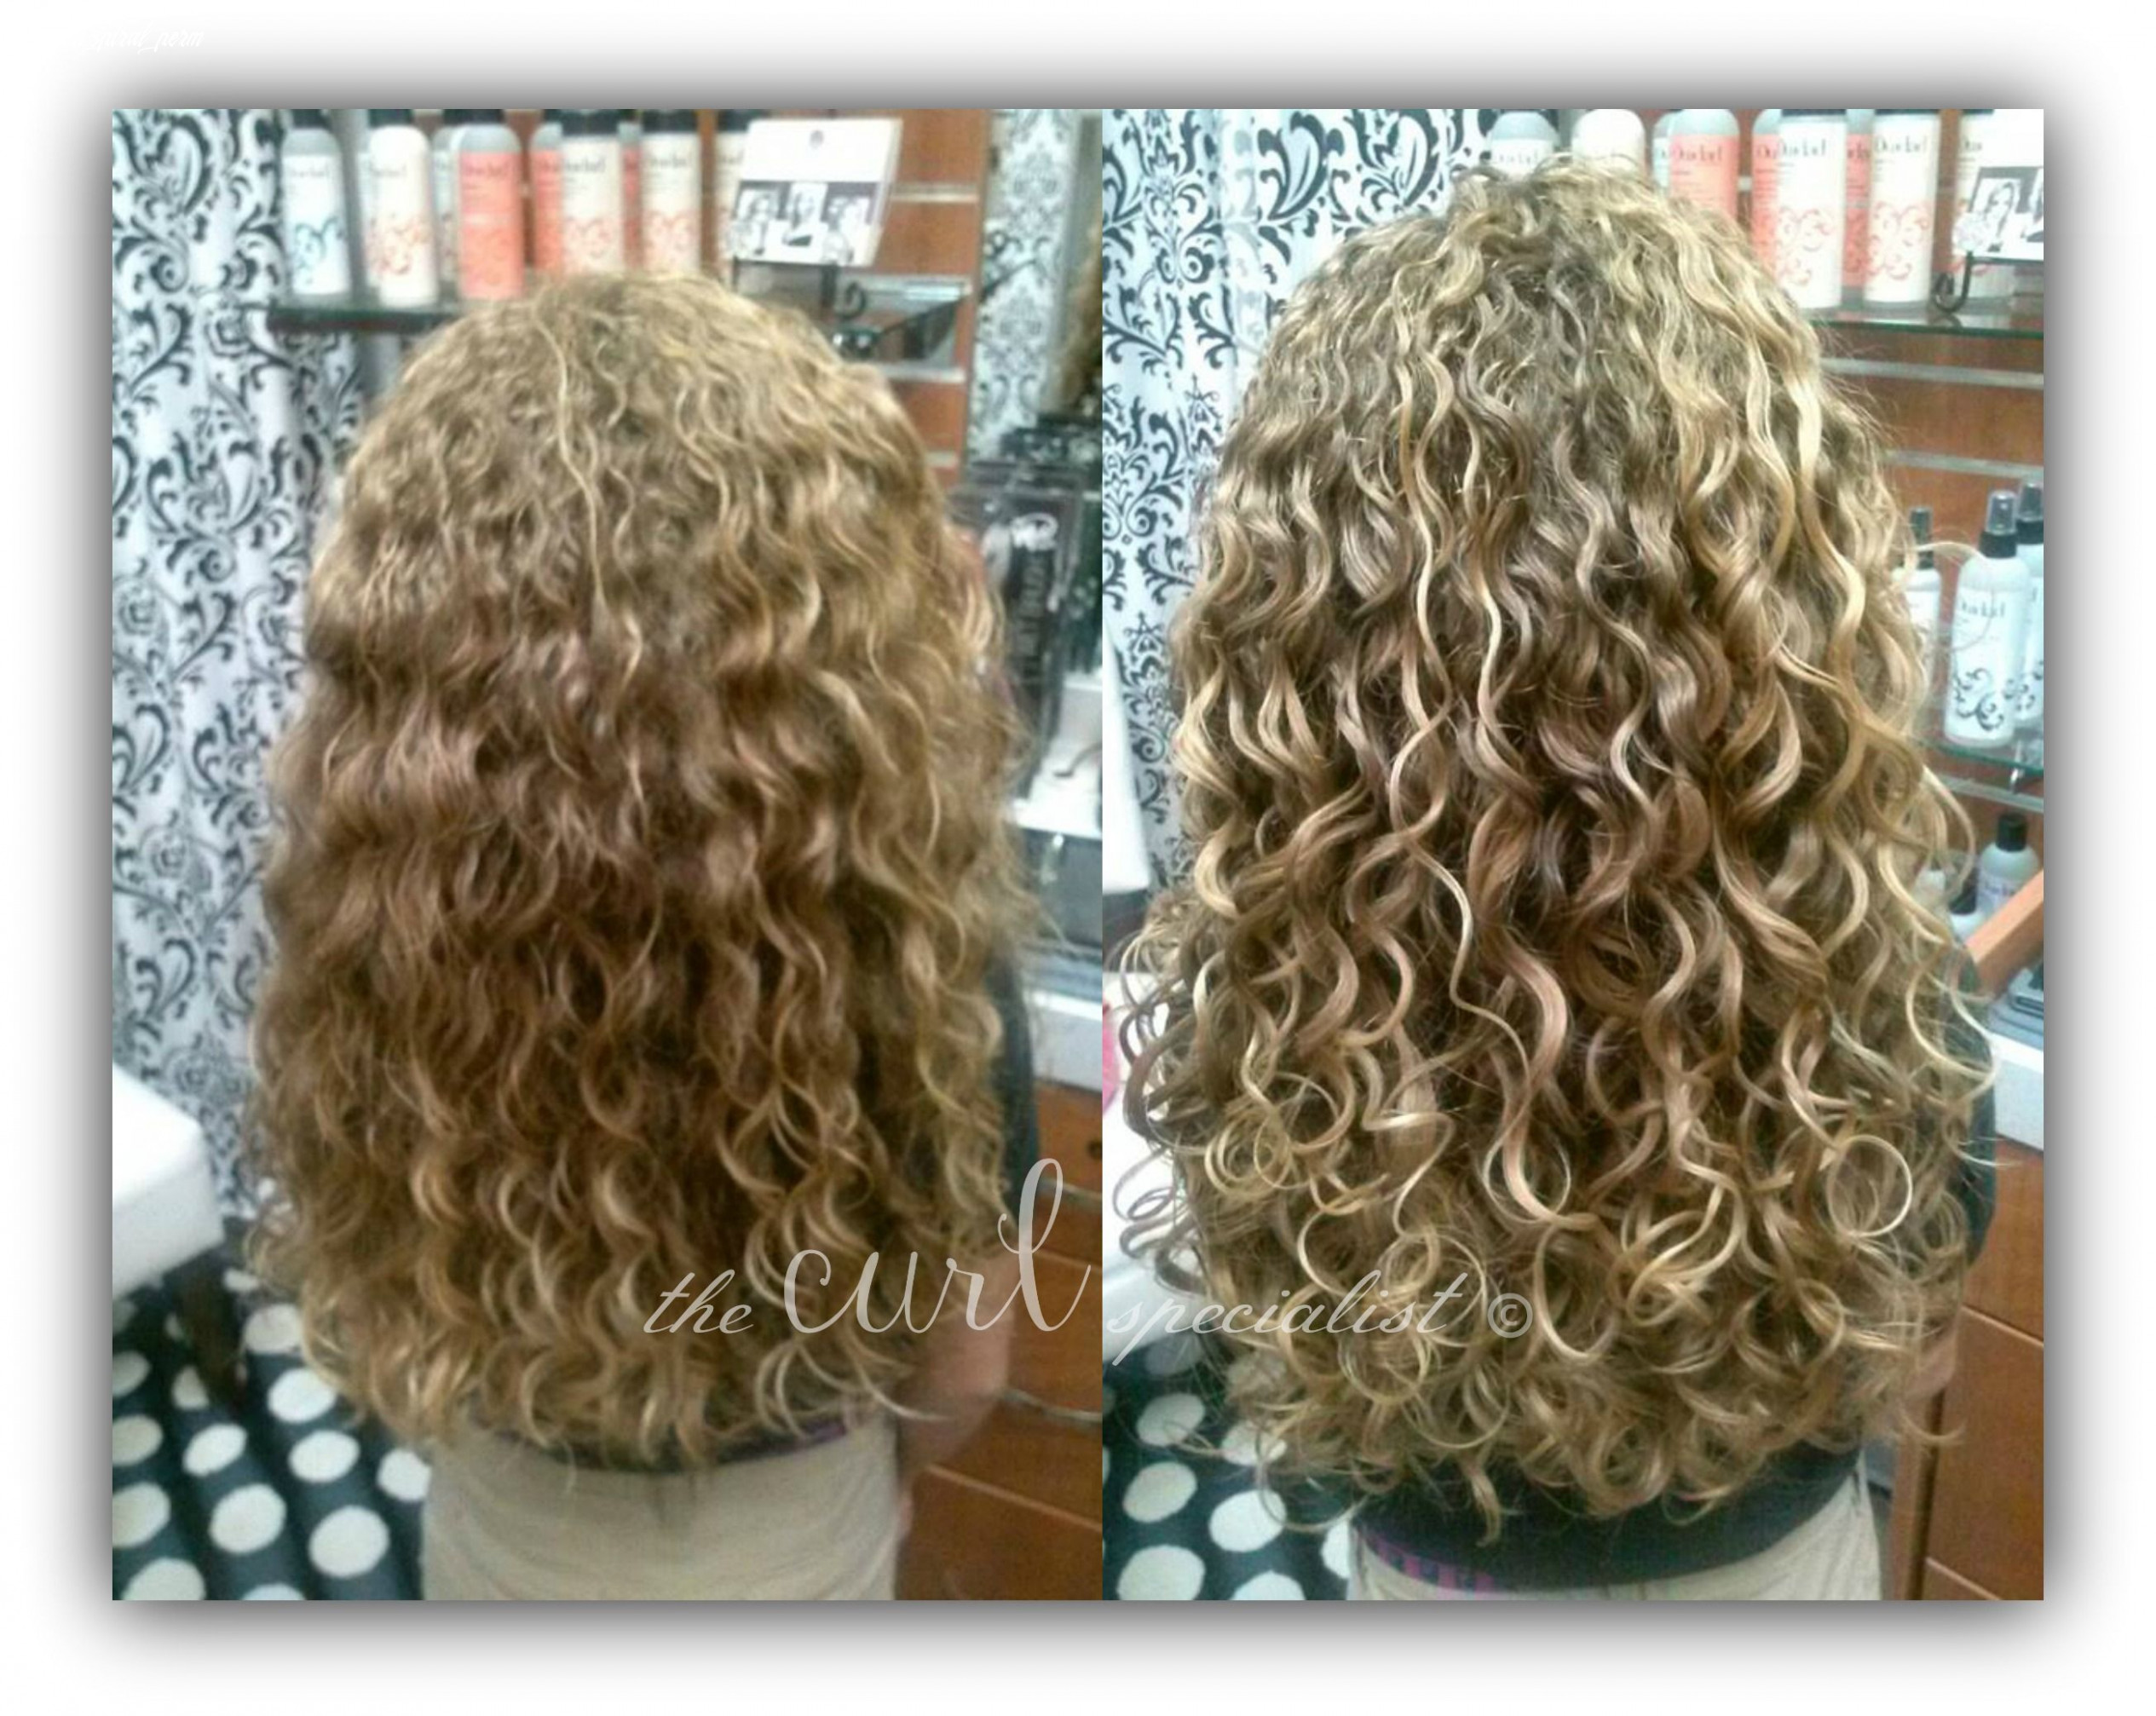 Spiral perm hairstyle awesome pin by copper on curly hair pictures medium spiral perm